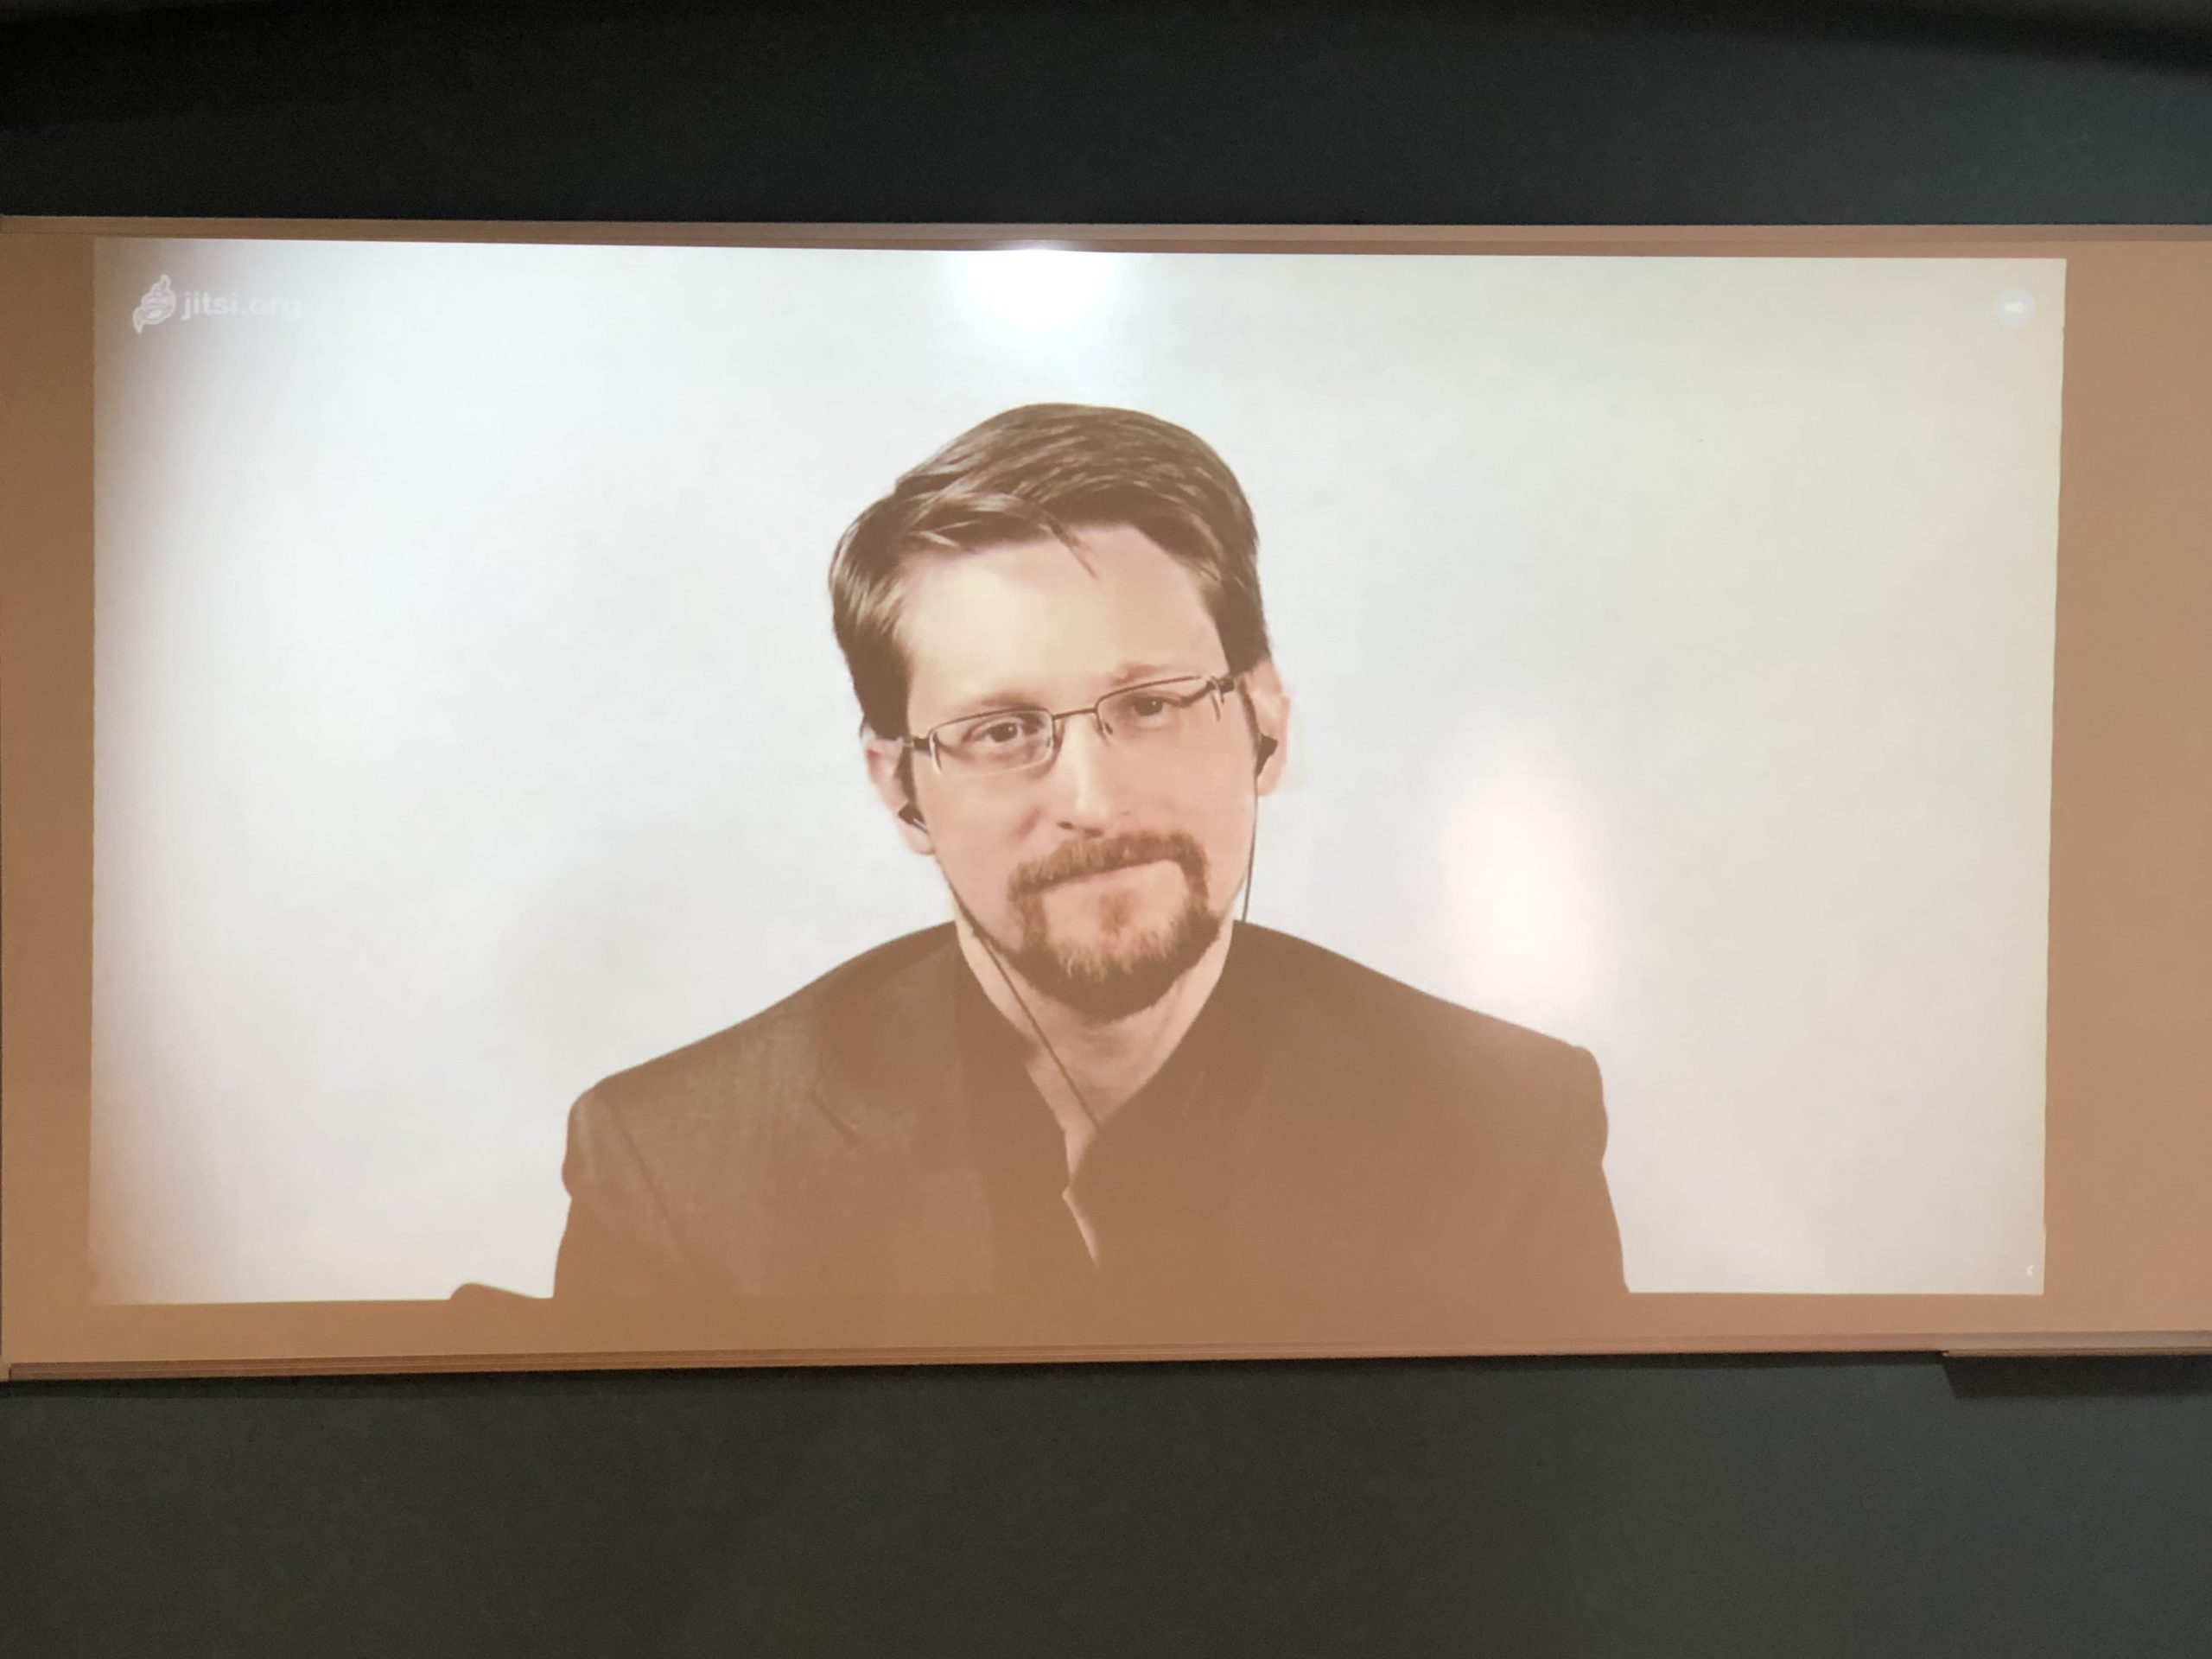 view through the camera of an interview shoot with edward snowden